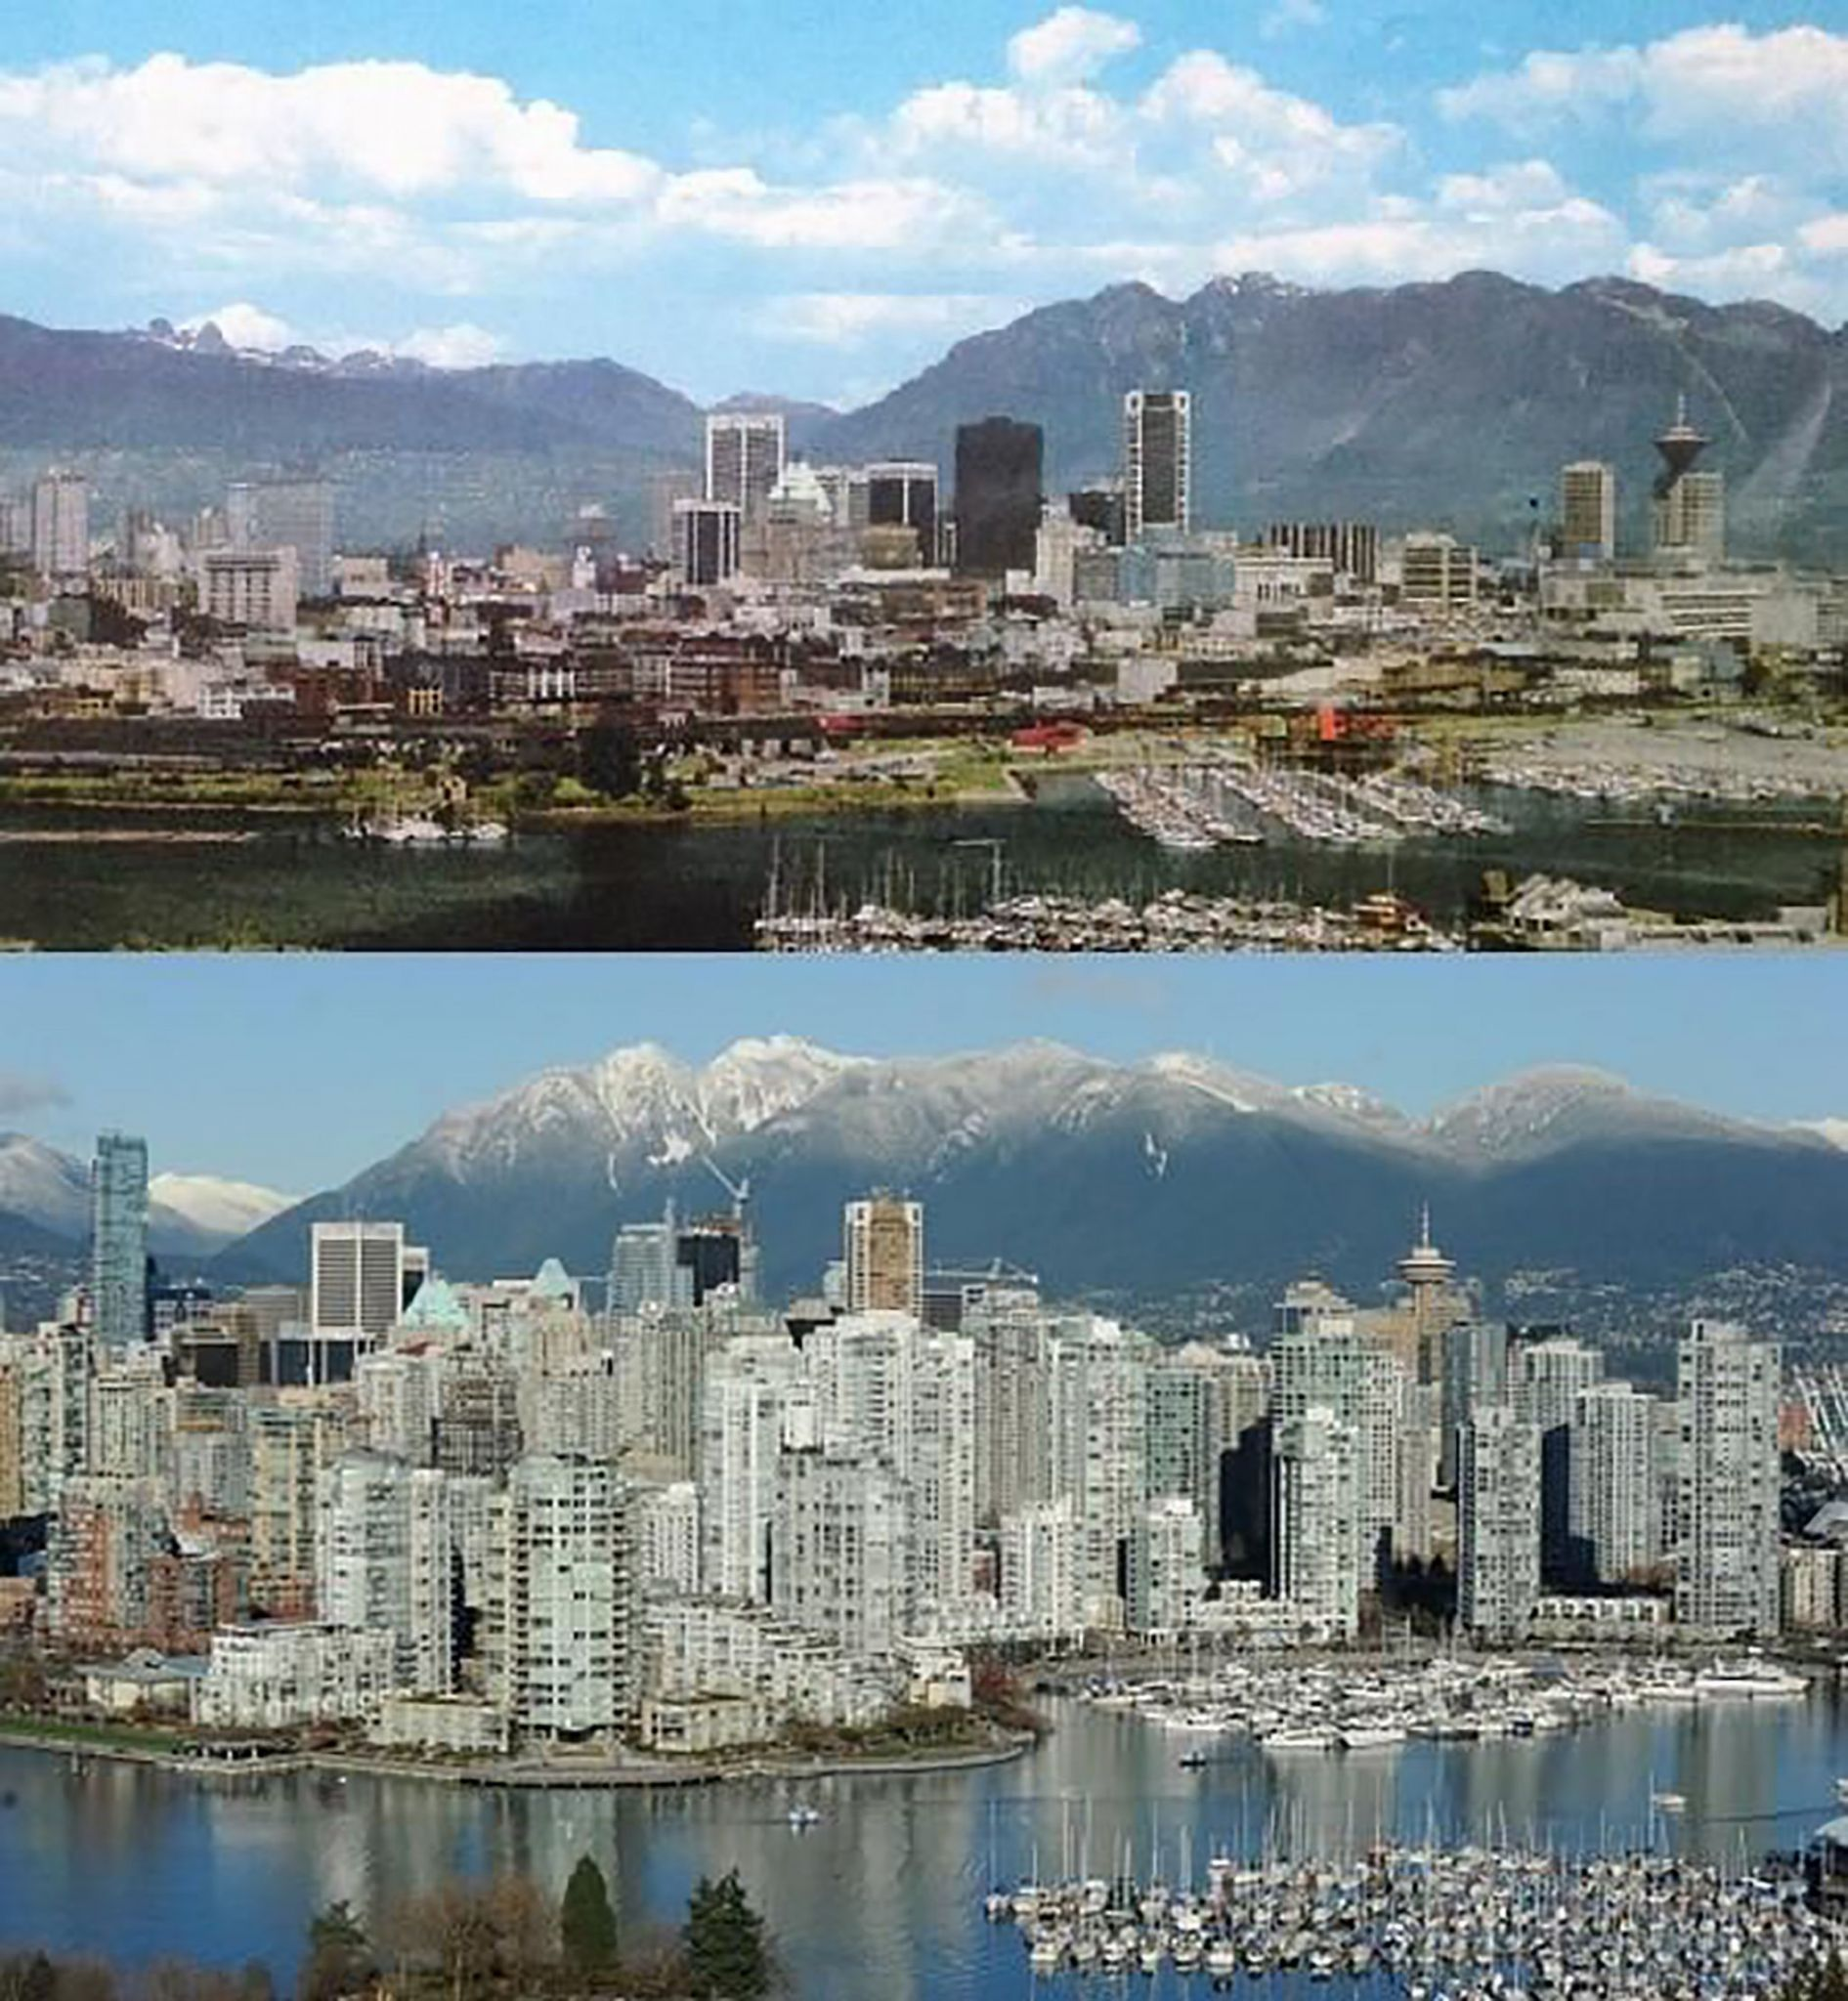 The sheer amount of concrete used worldwide can be seen in the development of our cities year after year. For example, this shows Vancouver in 1970 compared to 2014. Photo © www.bevancouver.com